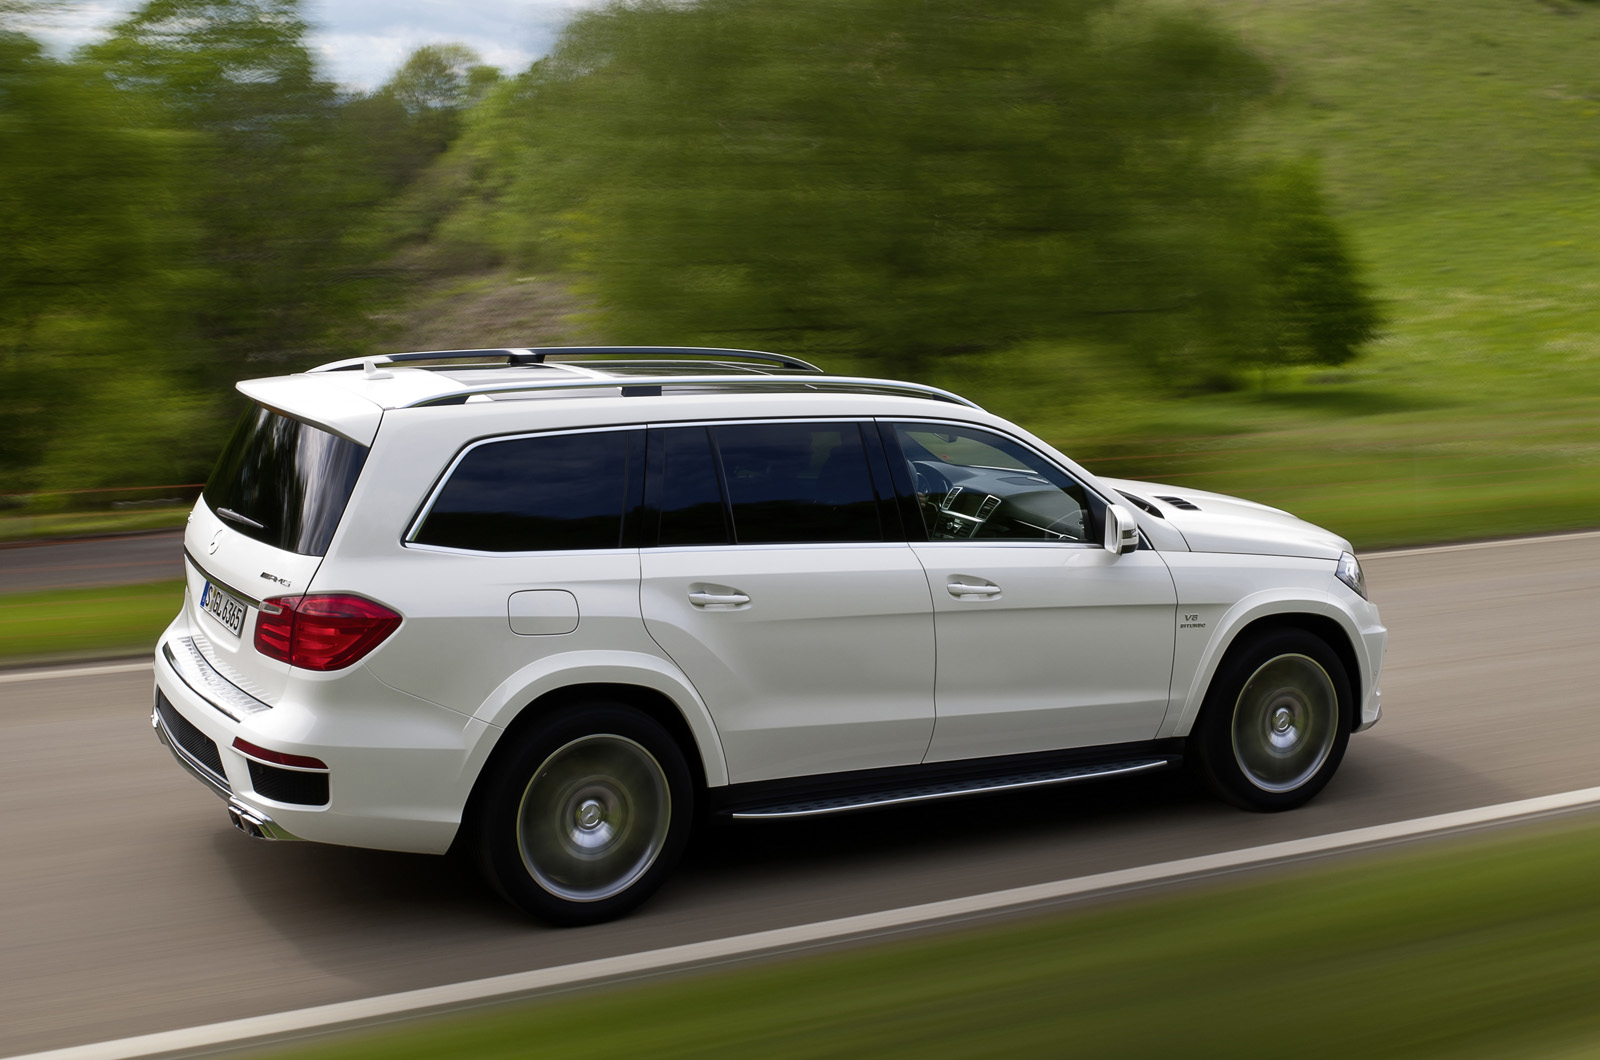 Mercedes benz gl63 amg first drive review for Mercedes benz gl63 amg